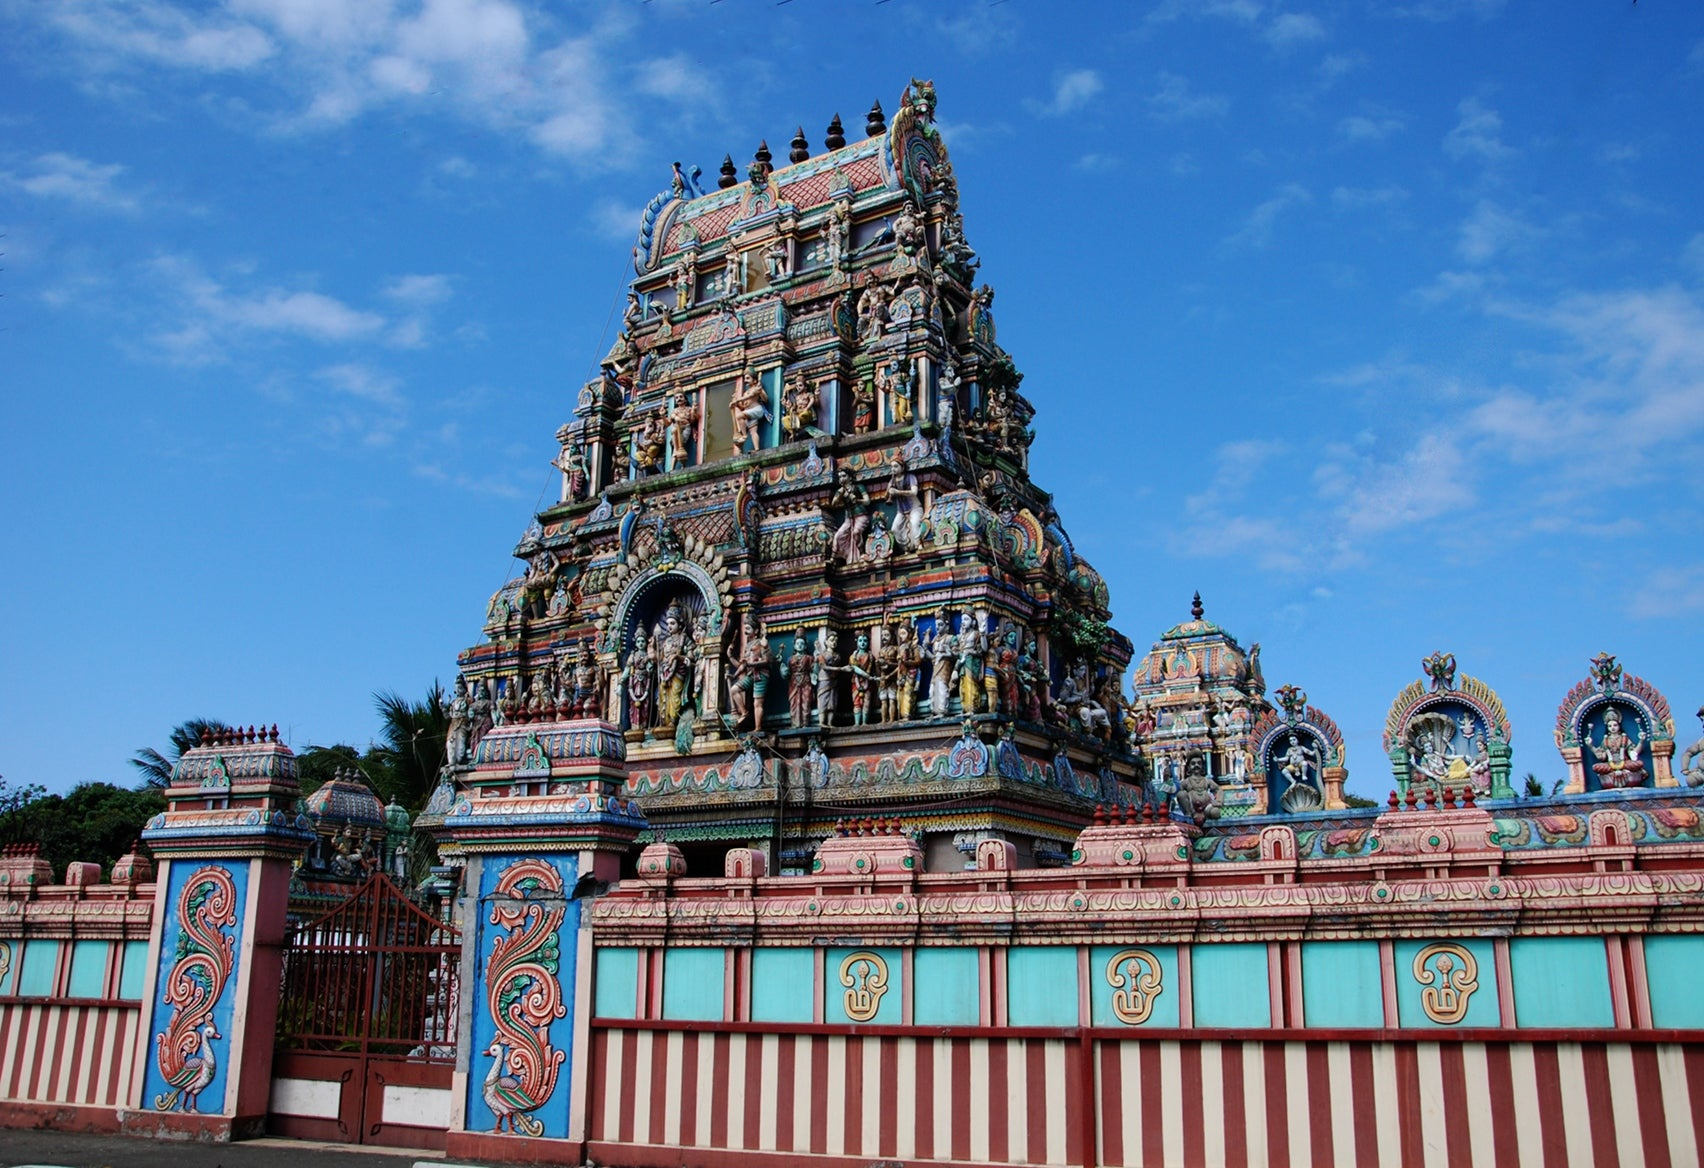 saint avold hindu personals Seichamps's best 100% free hindu dating site meet thousands of single hindus in seichamps with mingle2's free hindu personal ads and chat rooms our network of hindu men and women in seichamps is the perfect place to make hindu friends or find a hindu boyfriend or girlfriend in seichamps join the hundreds of single lorraine hindus already online finding love and friendship with single hindus.